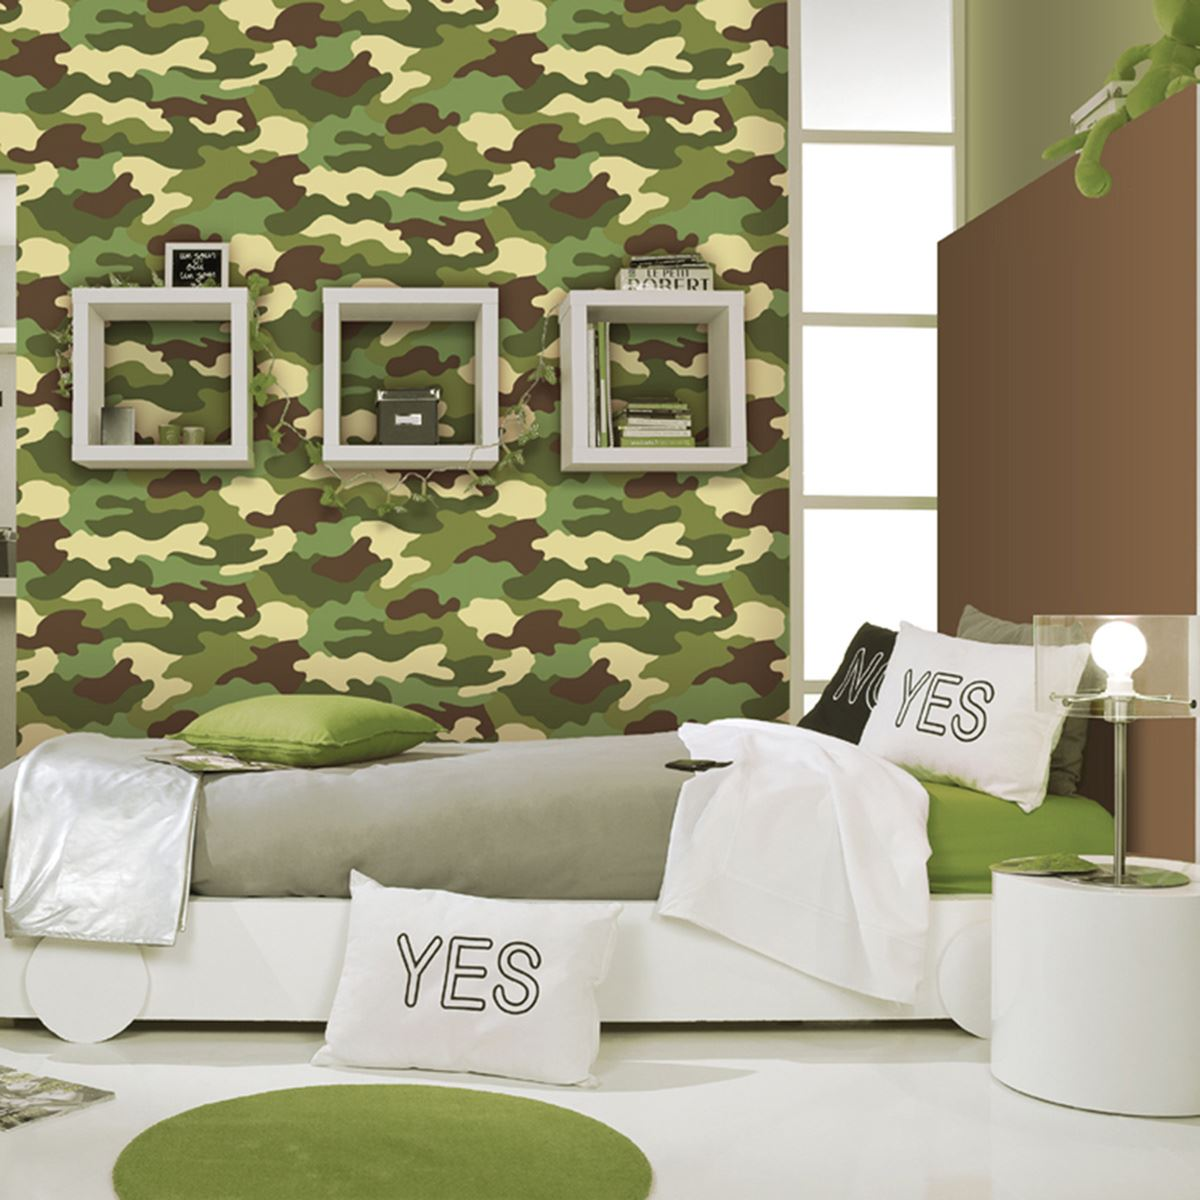 Camouflage Wallpaper On The Wall - HD Wallpaper